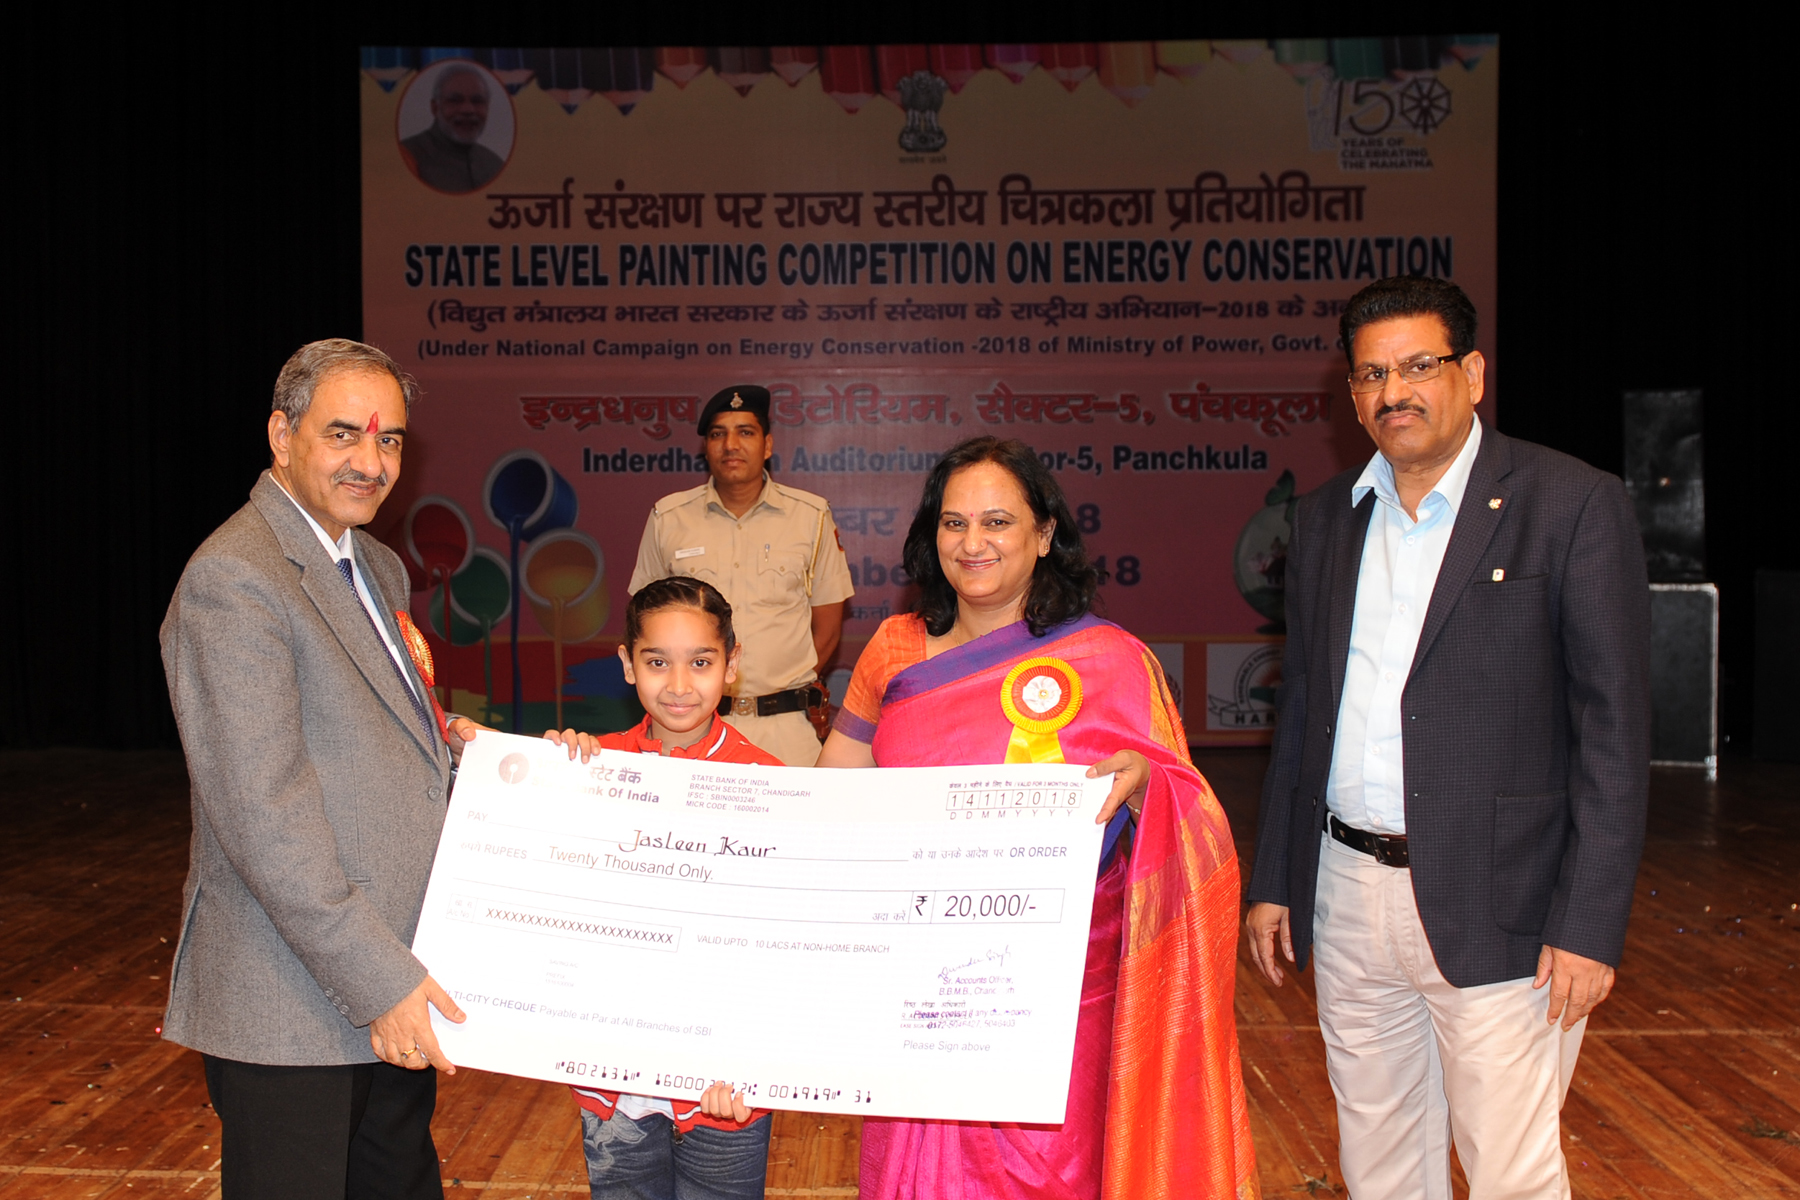 BBMB organized 'on the spot' State Level Painting Competition on Energy Conservation - 25.5 lac school children participated.